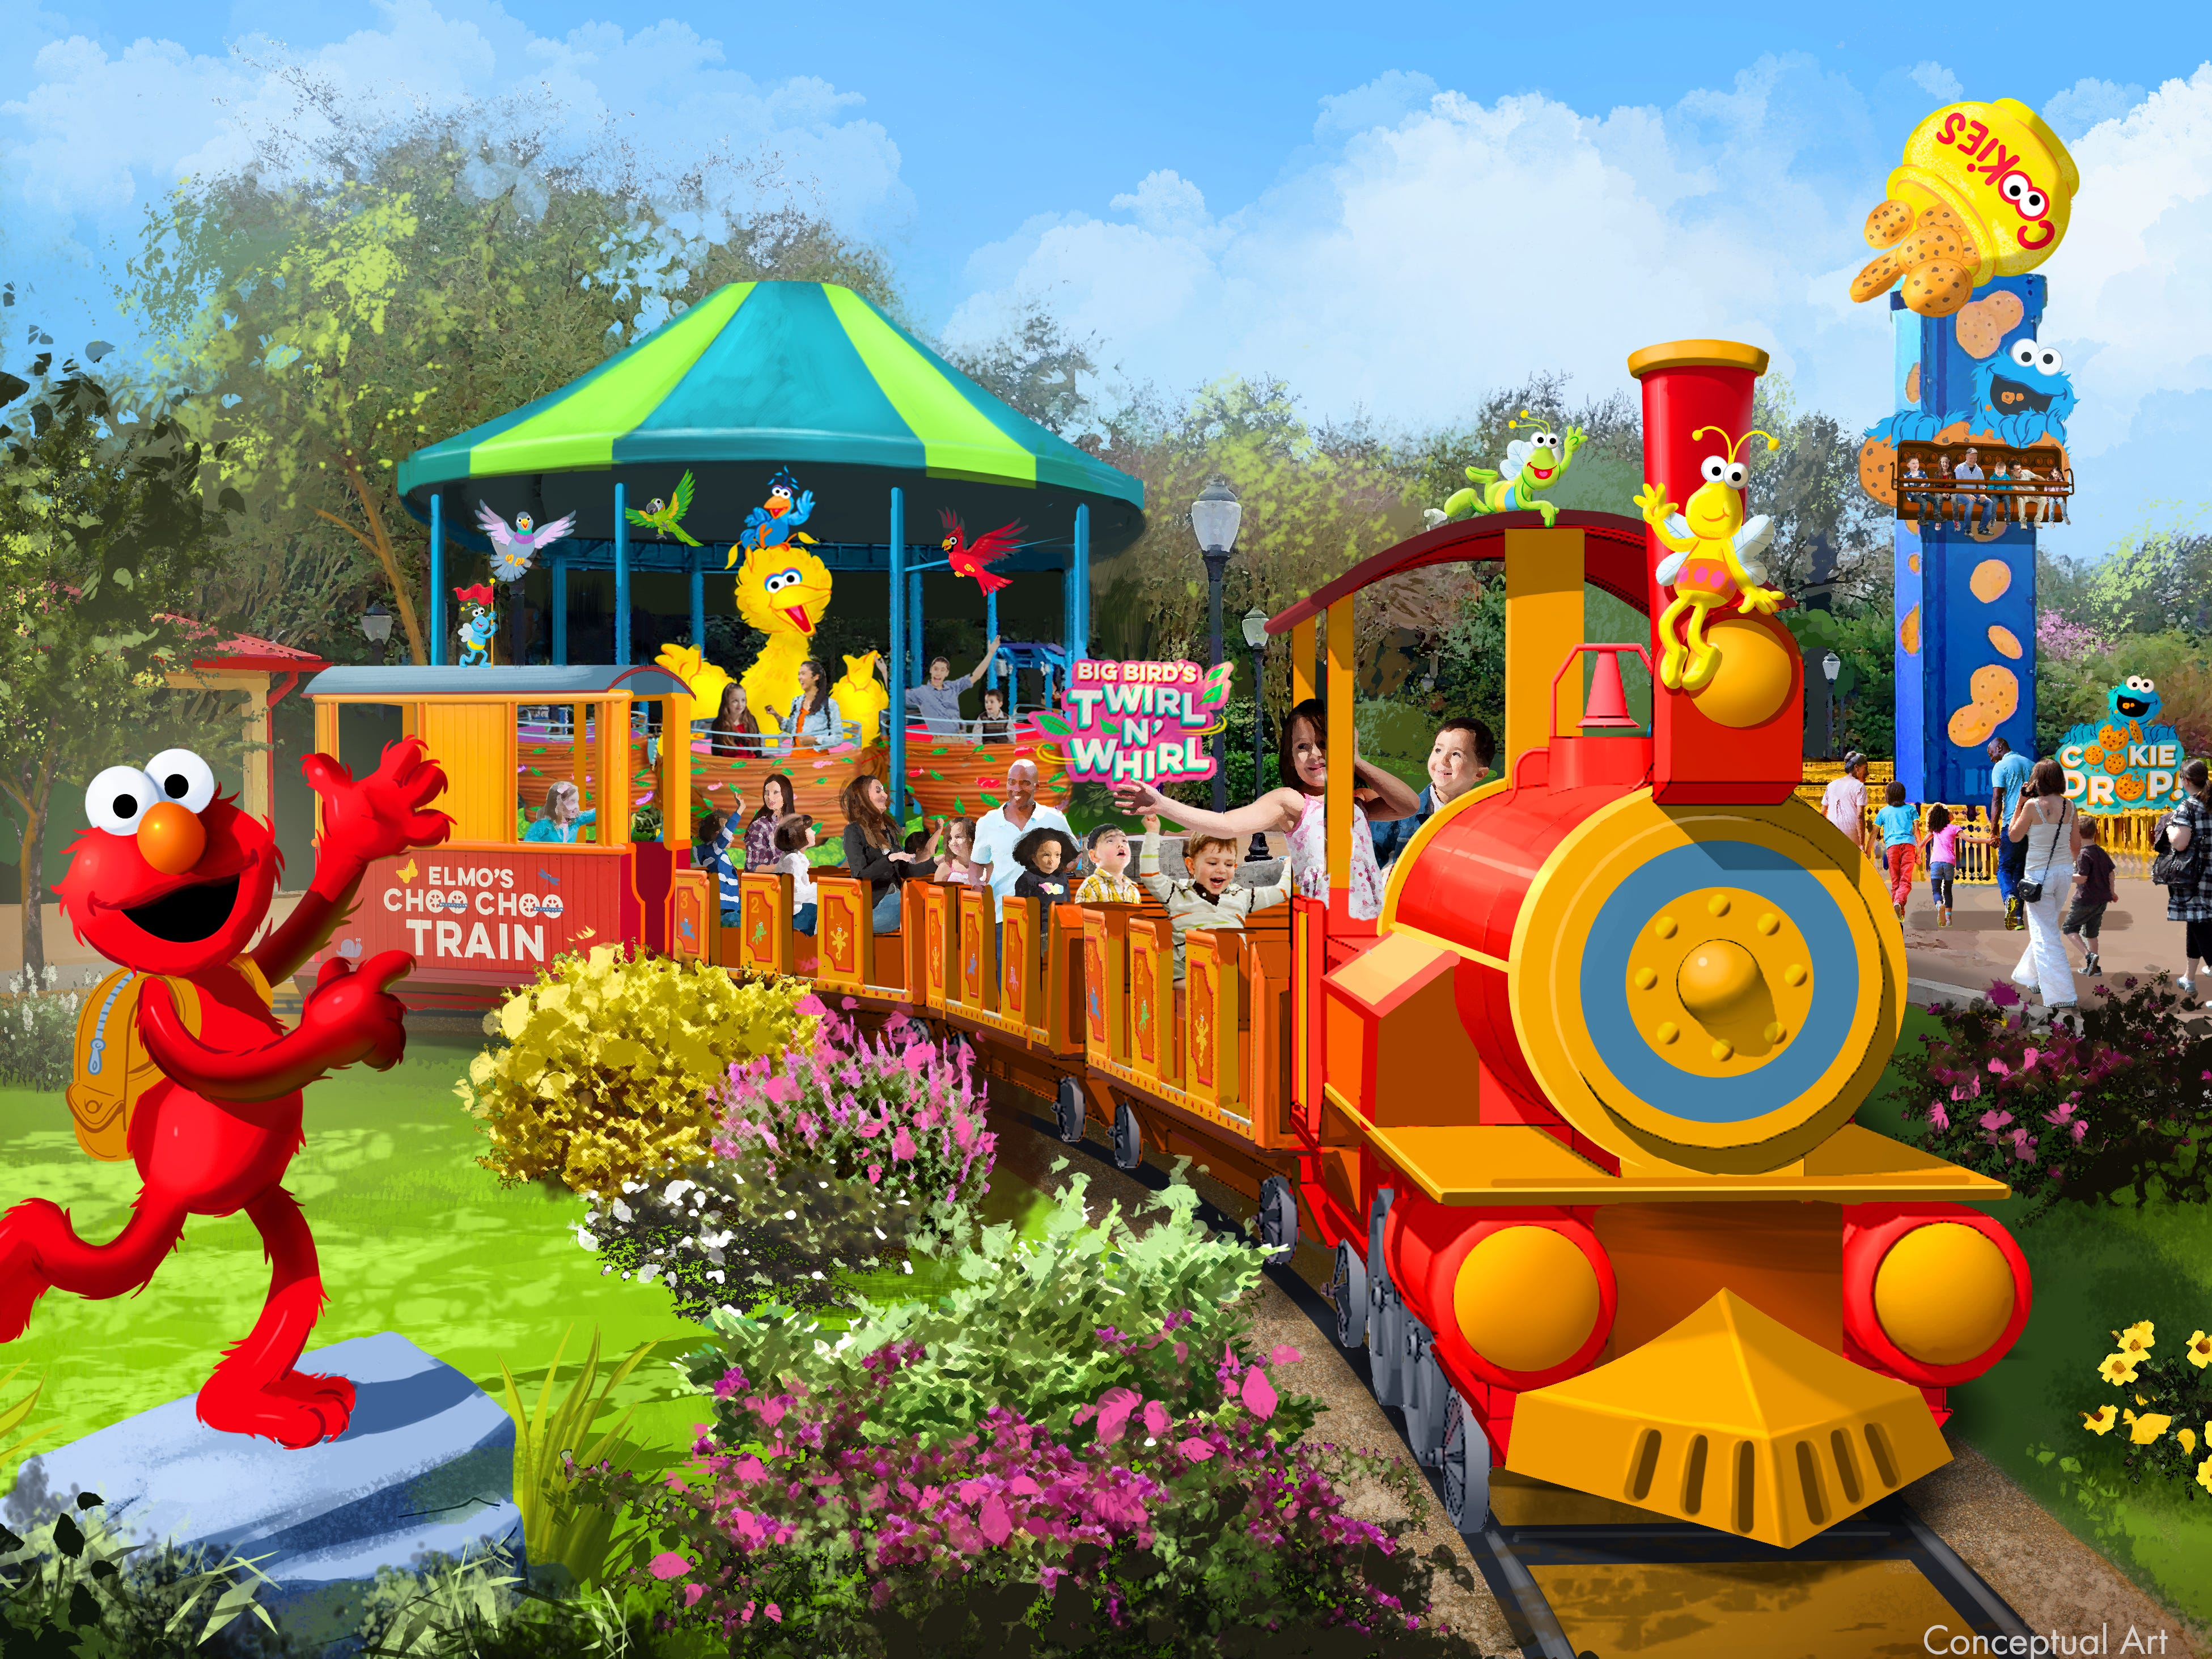 Shown is conceptual art of Elmo's Choo Choo Train at Sesame Street Land at Seaworld Orlando. The attraction opens March 27, 2019.